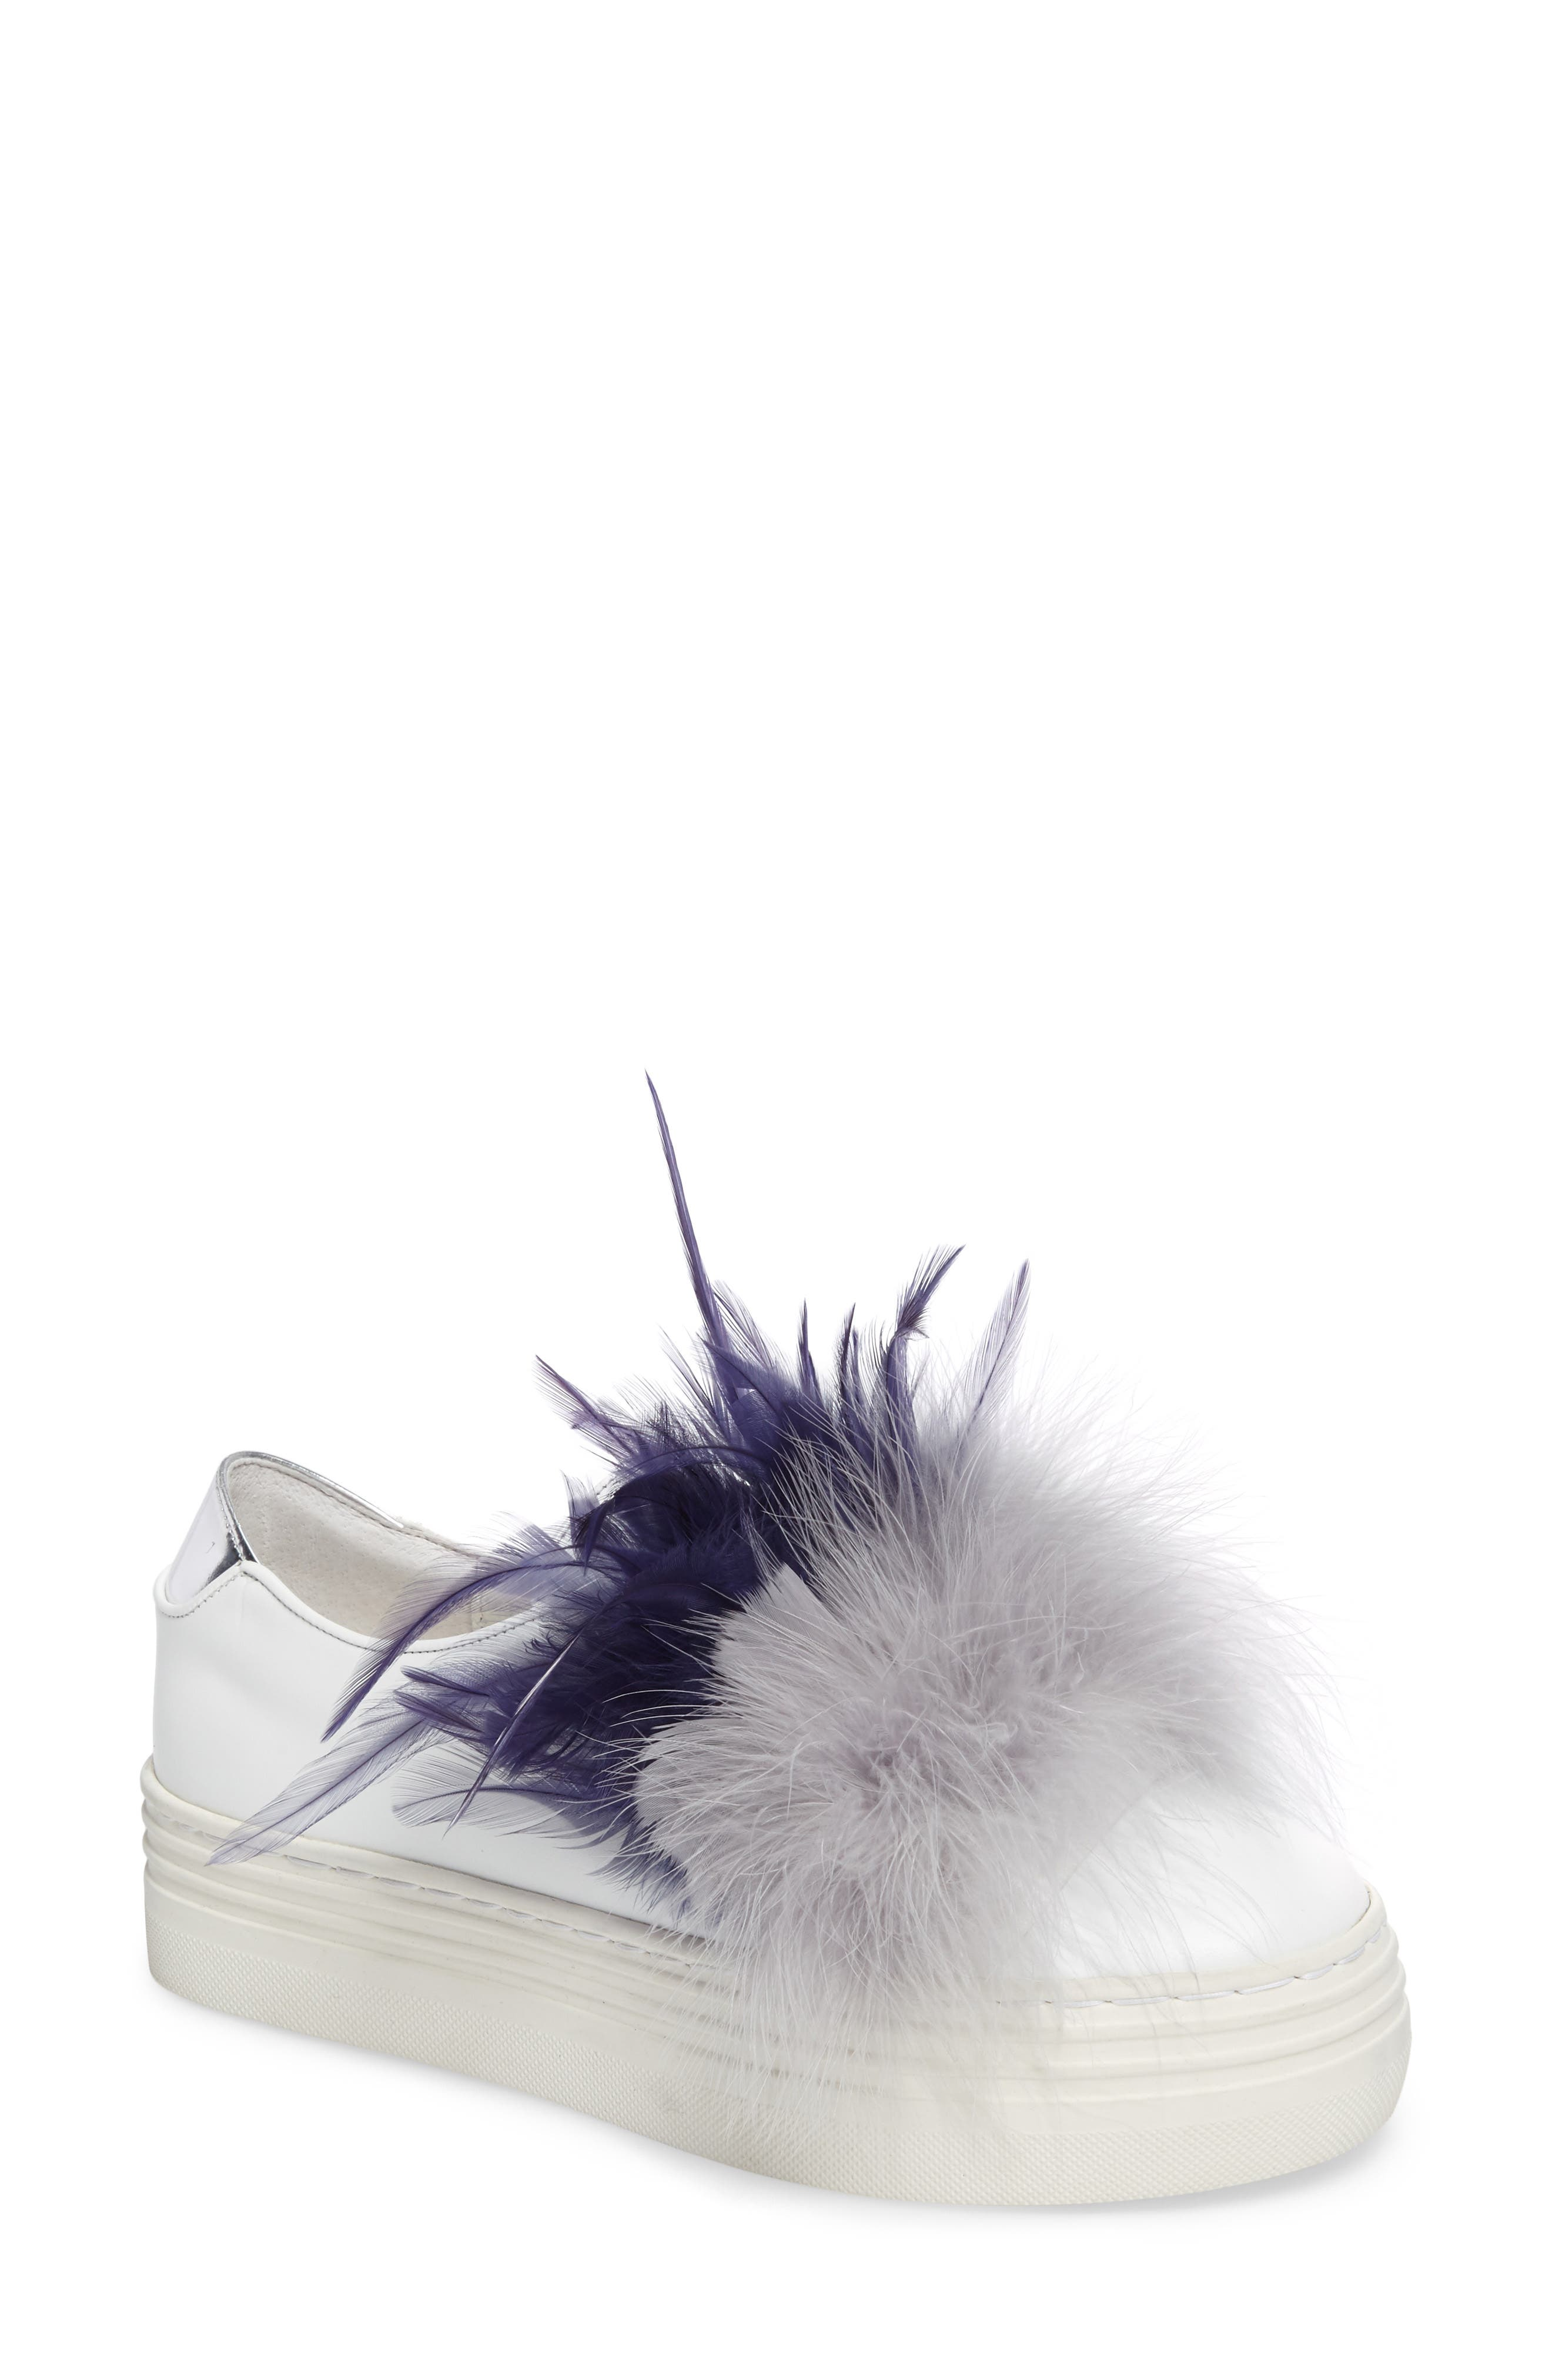 Tina Feathered Slip-On Sneaker,                         Main,                         color, 110